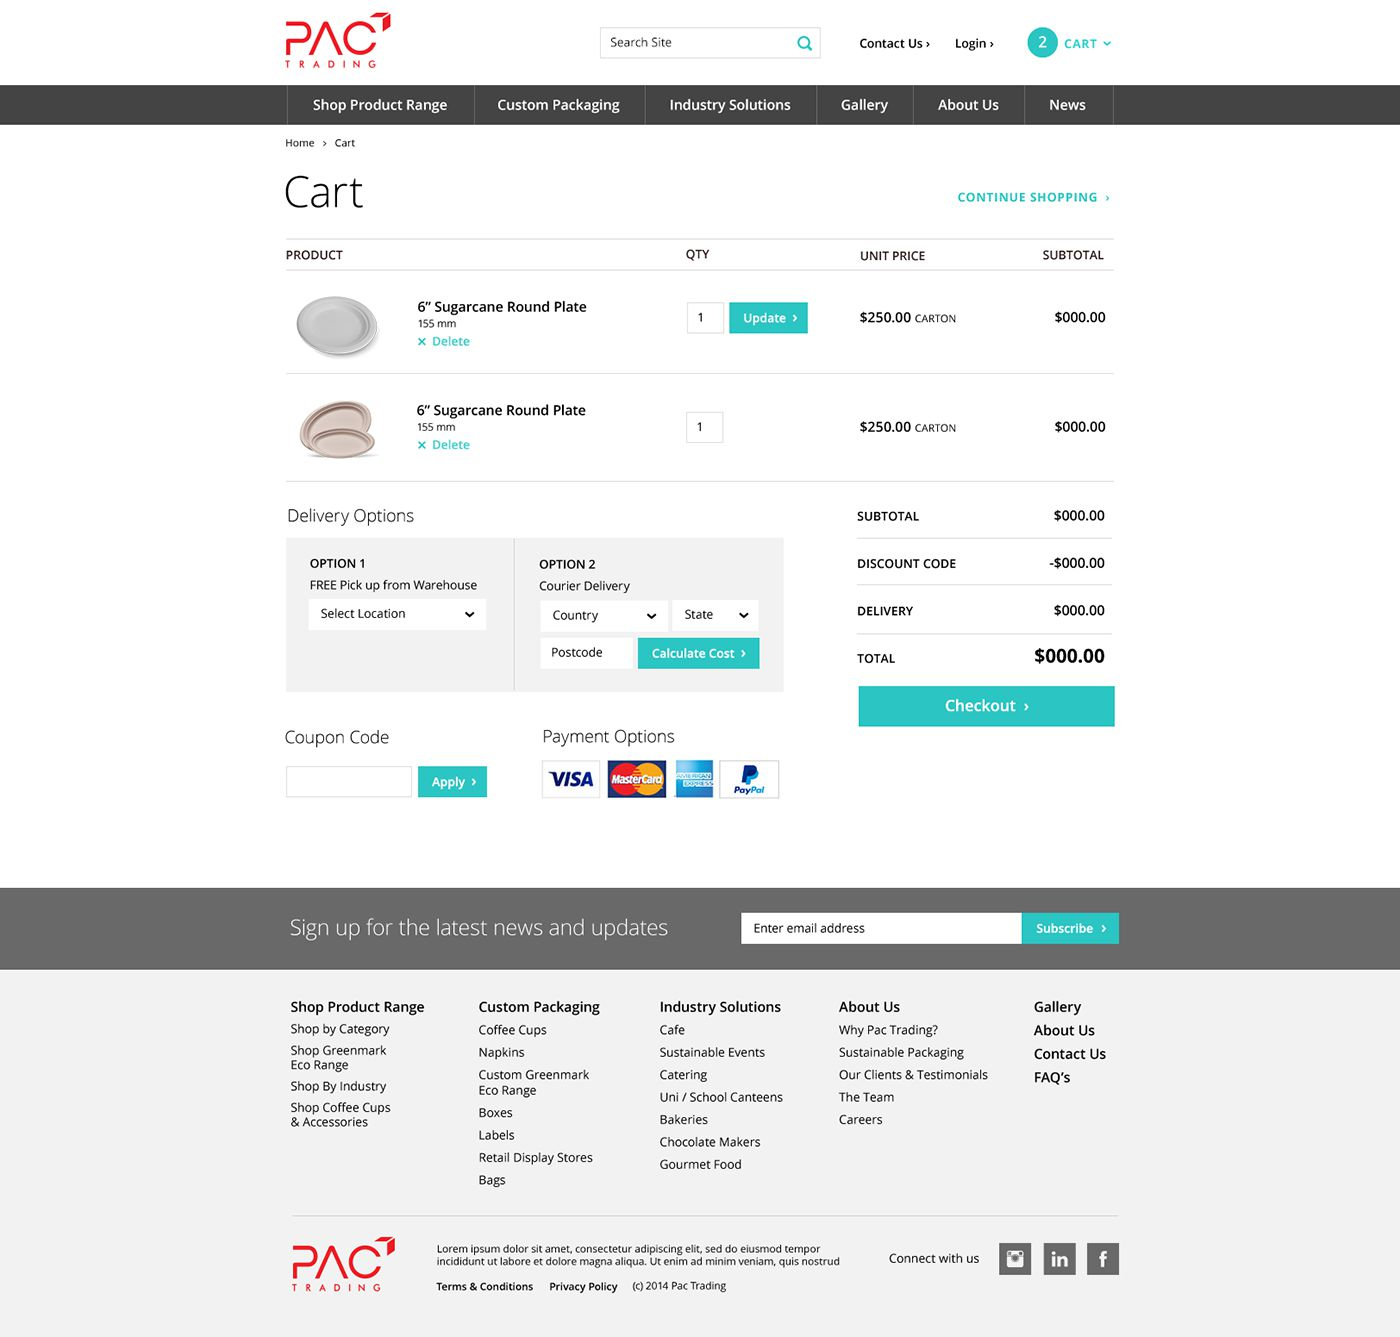 <br /> <b>Notice</b>:  Undefined variable: clientLogo in <b>/home/rysen/public_html/wp-content/themes/rysen/single-work.php</b> on line <b>97</b><br />